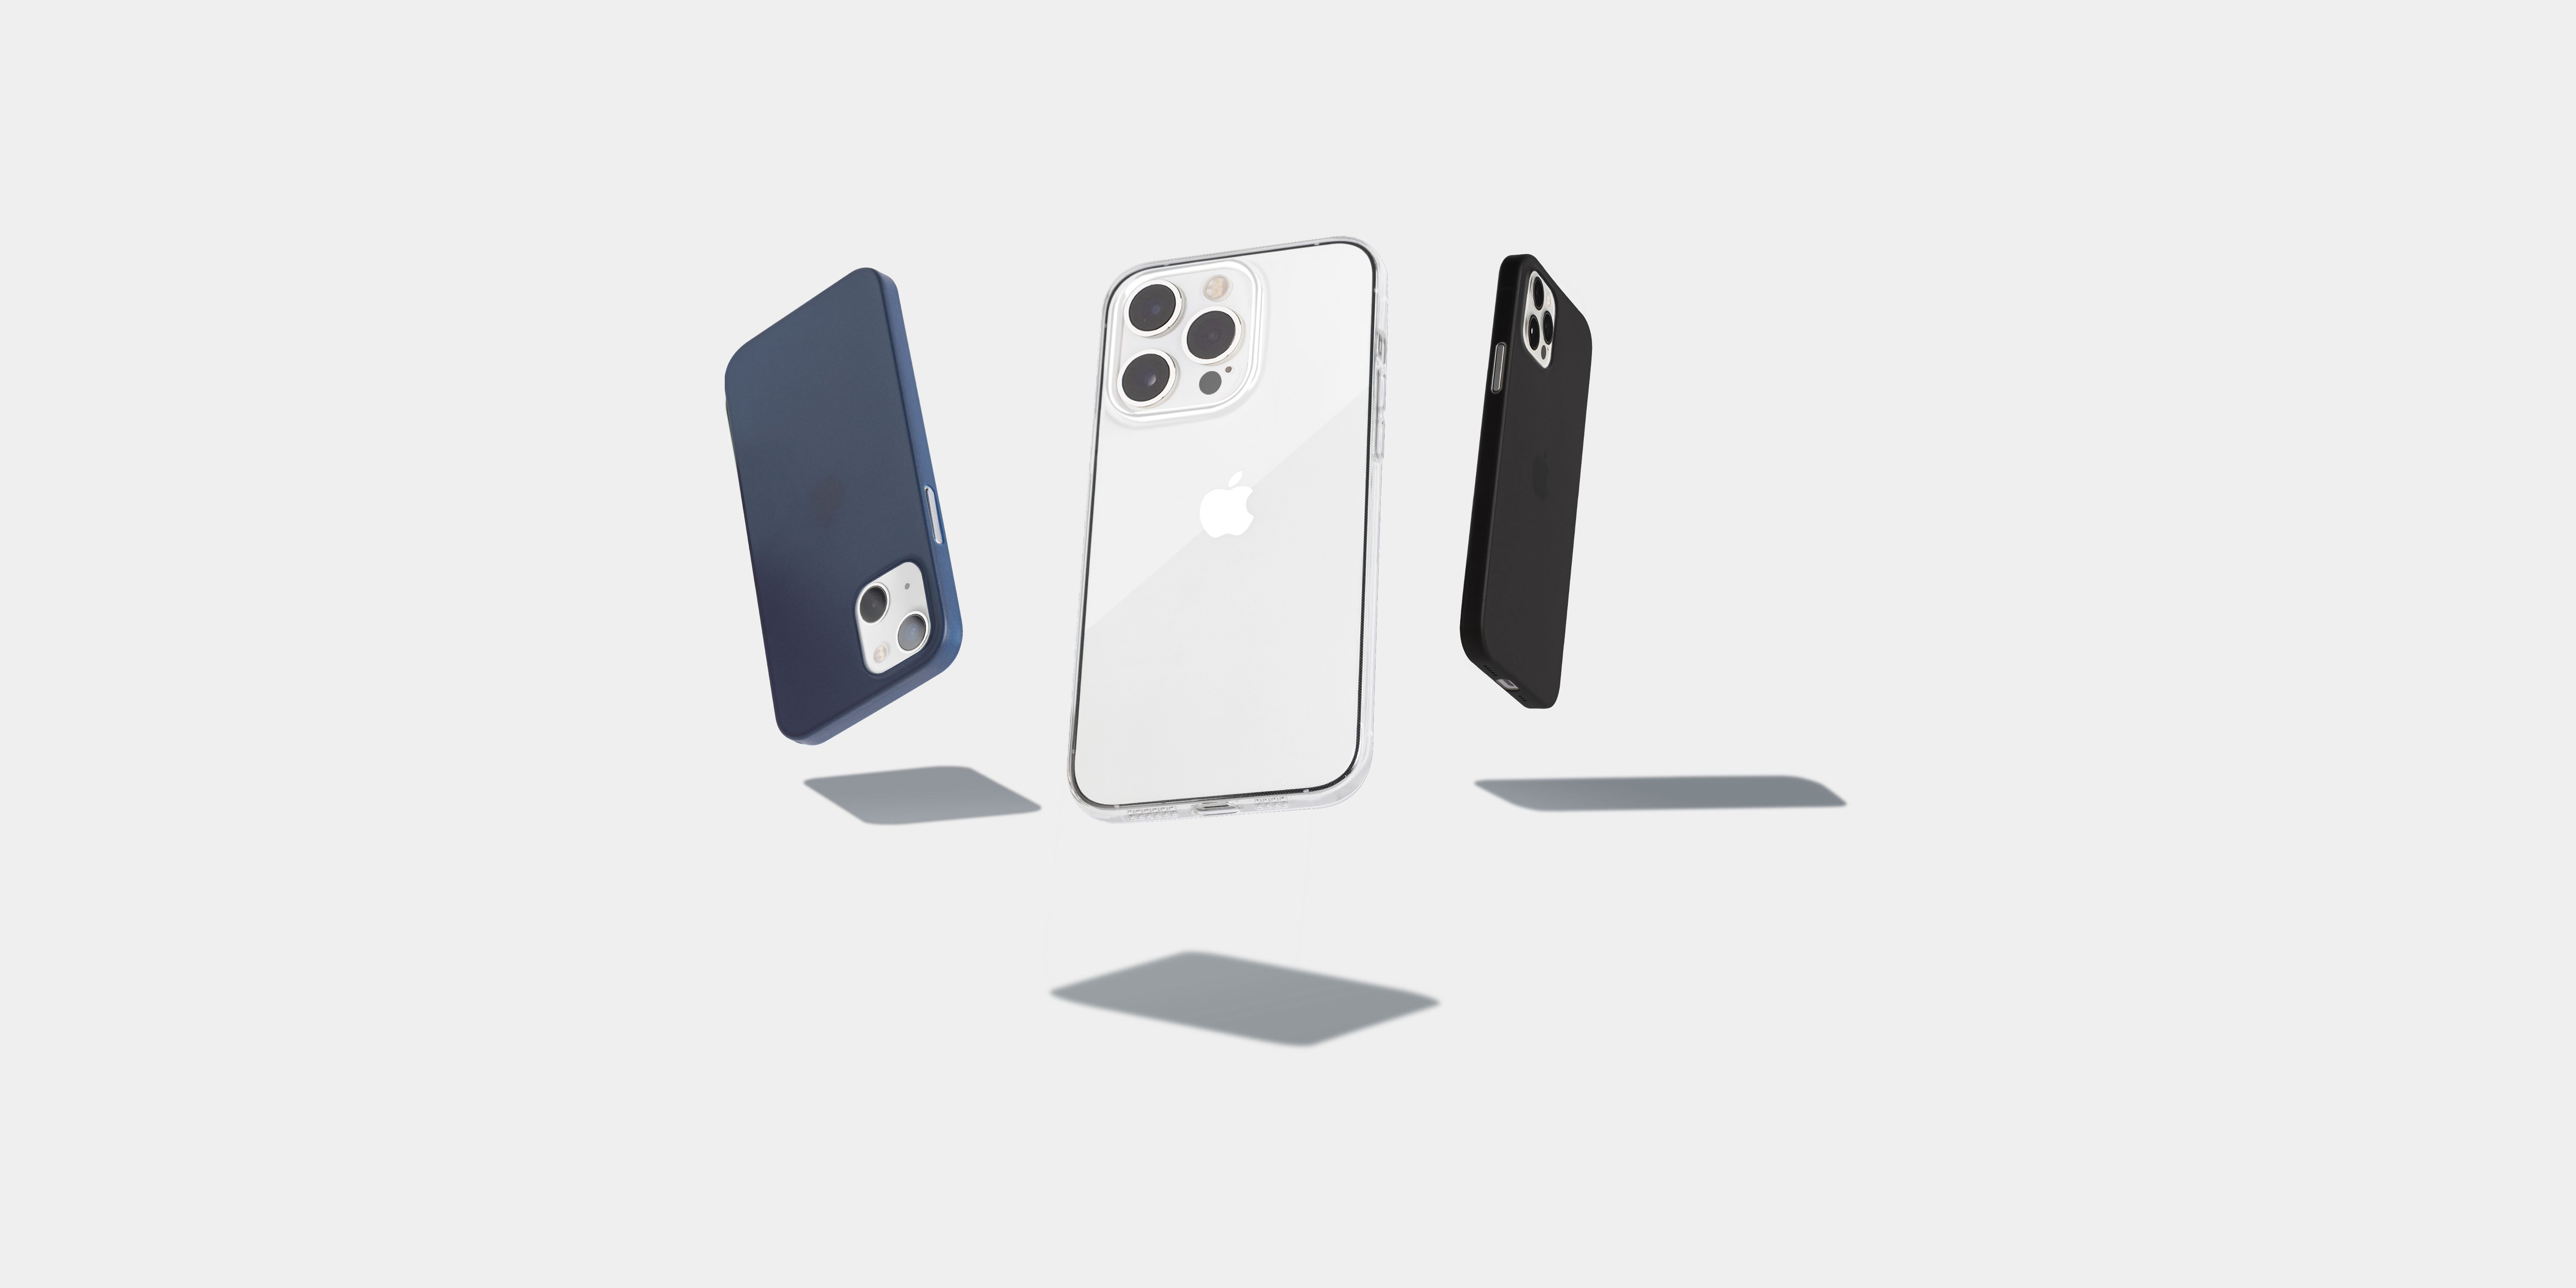 iPhone 13 with totallee matte cases